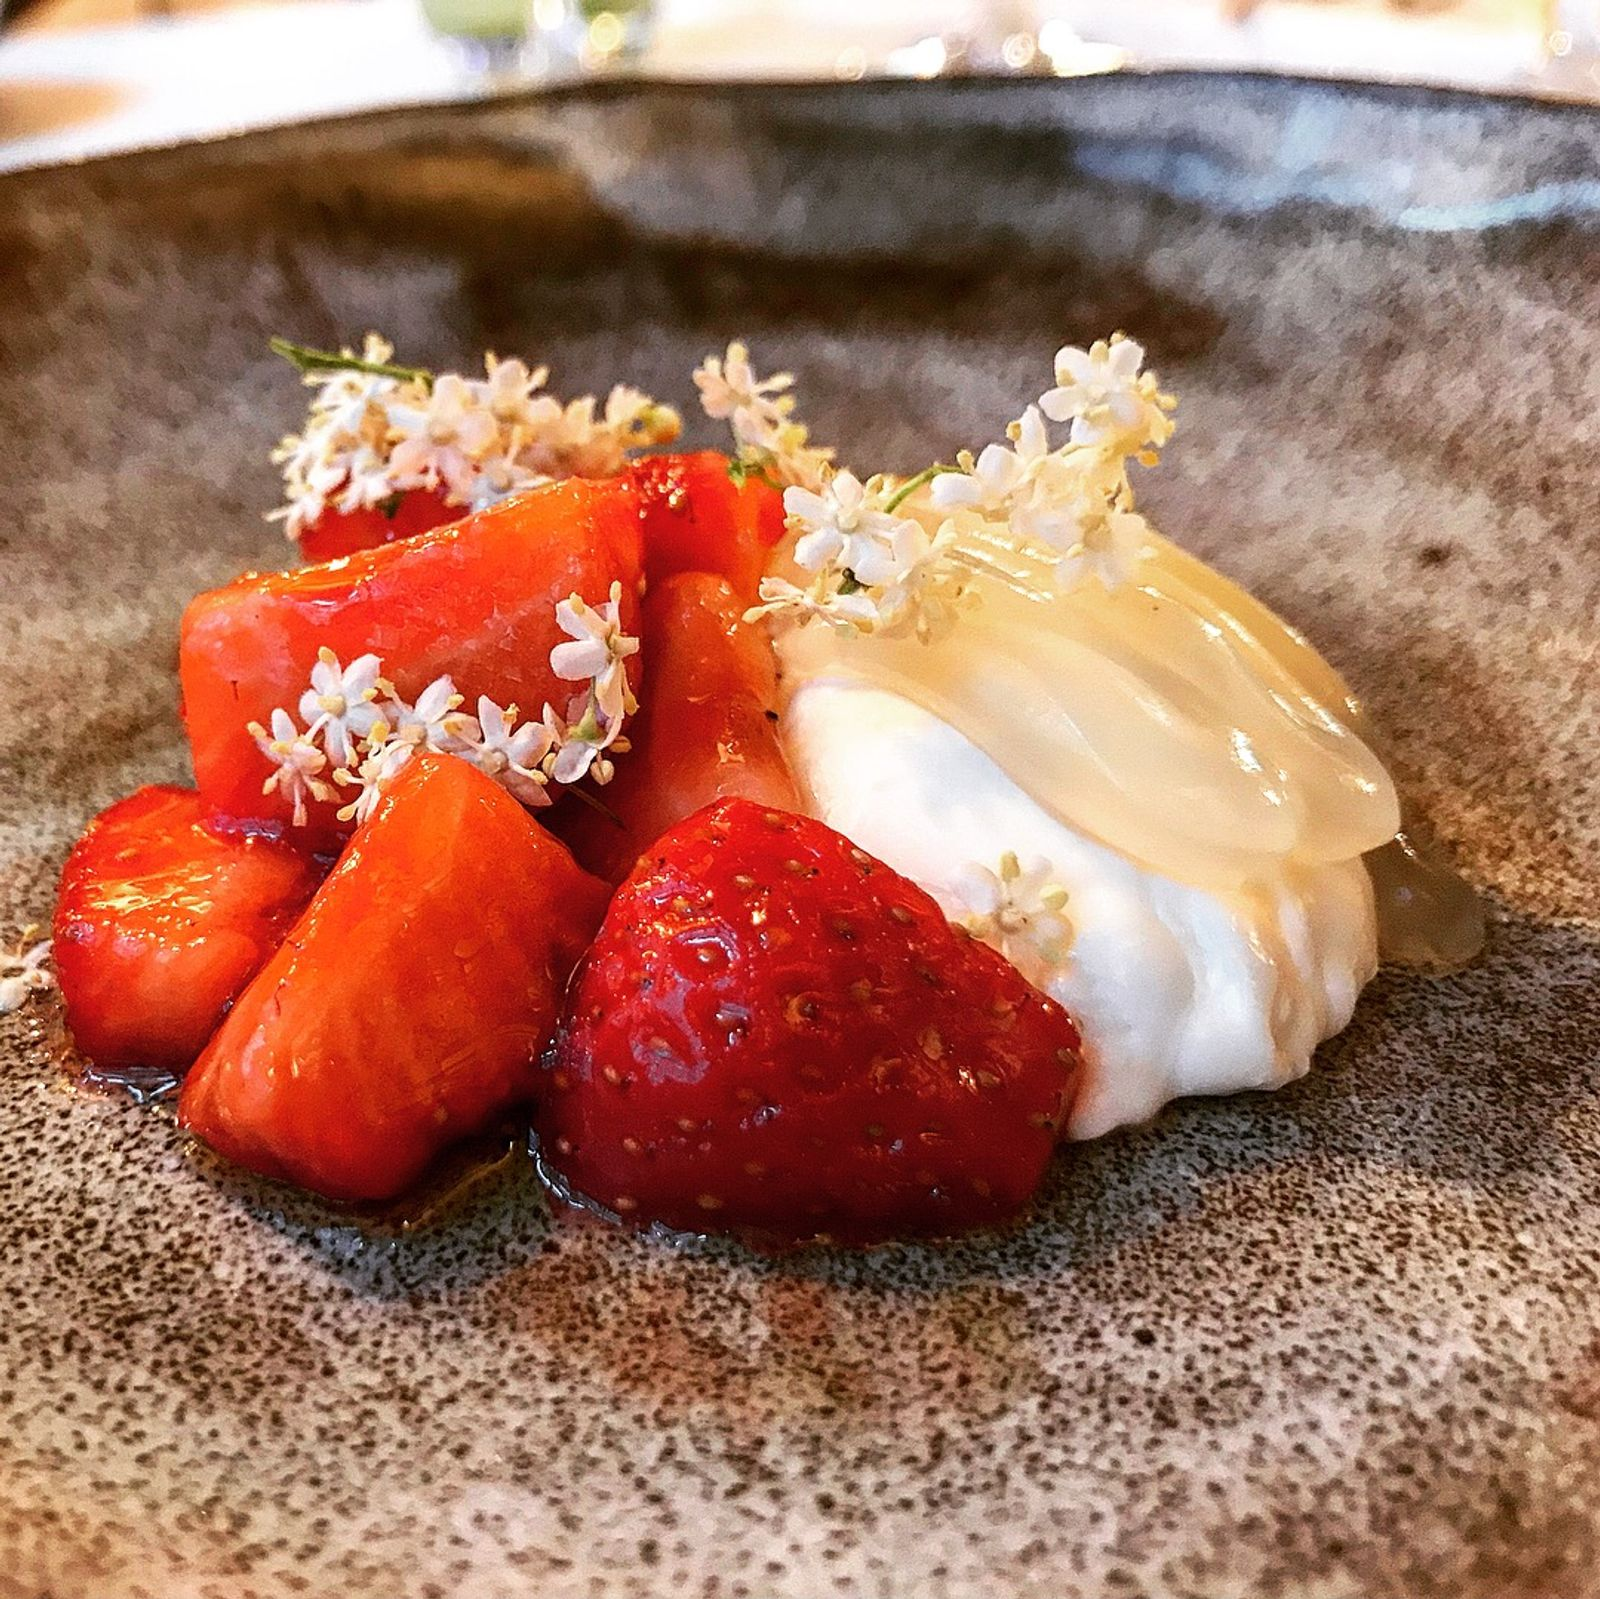 Strawberry and elderflower dessert at The Granary in Newtown